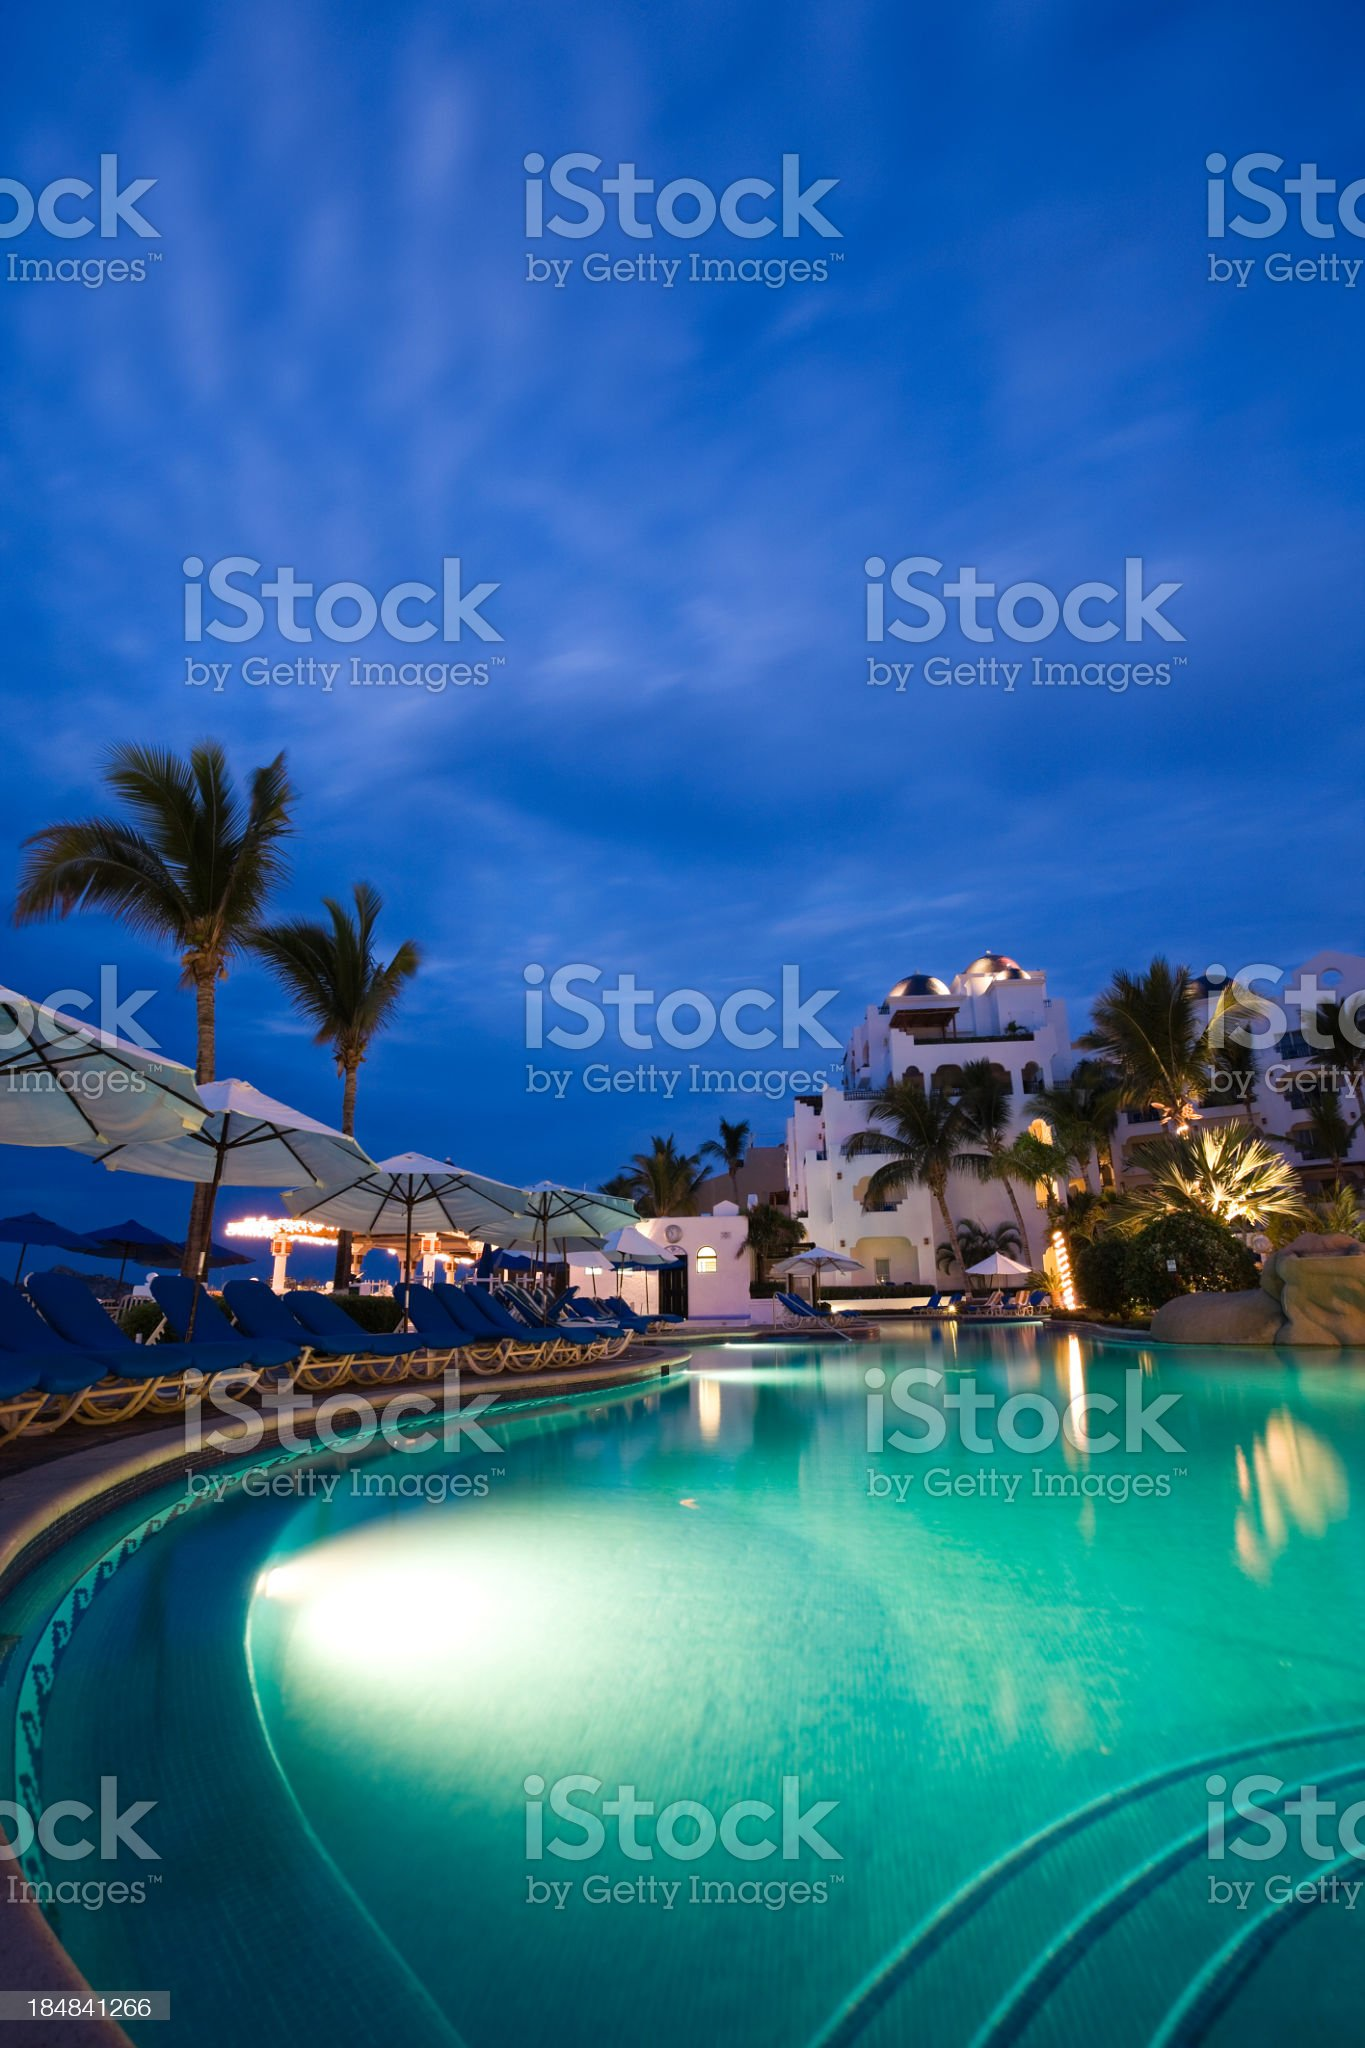 Nighttime swimming pool and resort in Cabo San Lucas, Mexico royalty-free stock photo